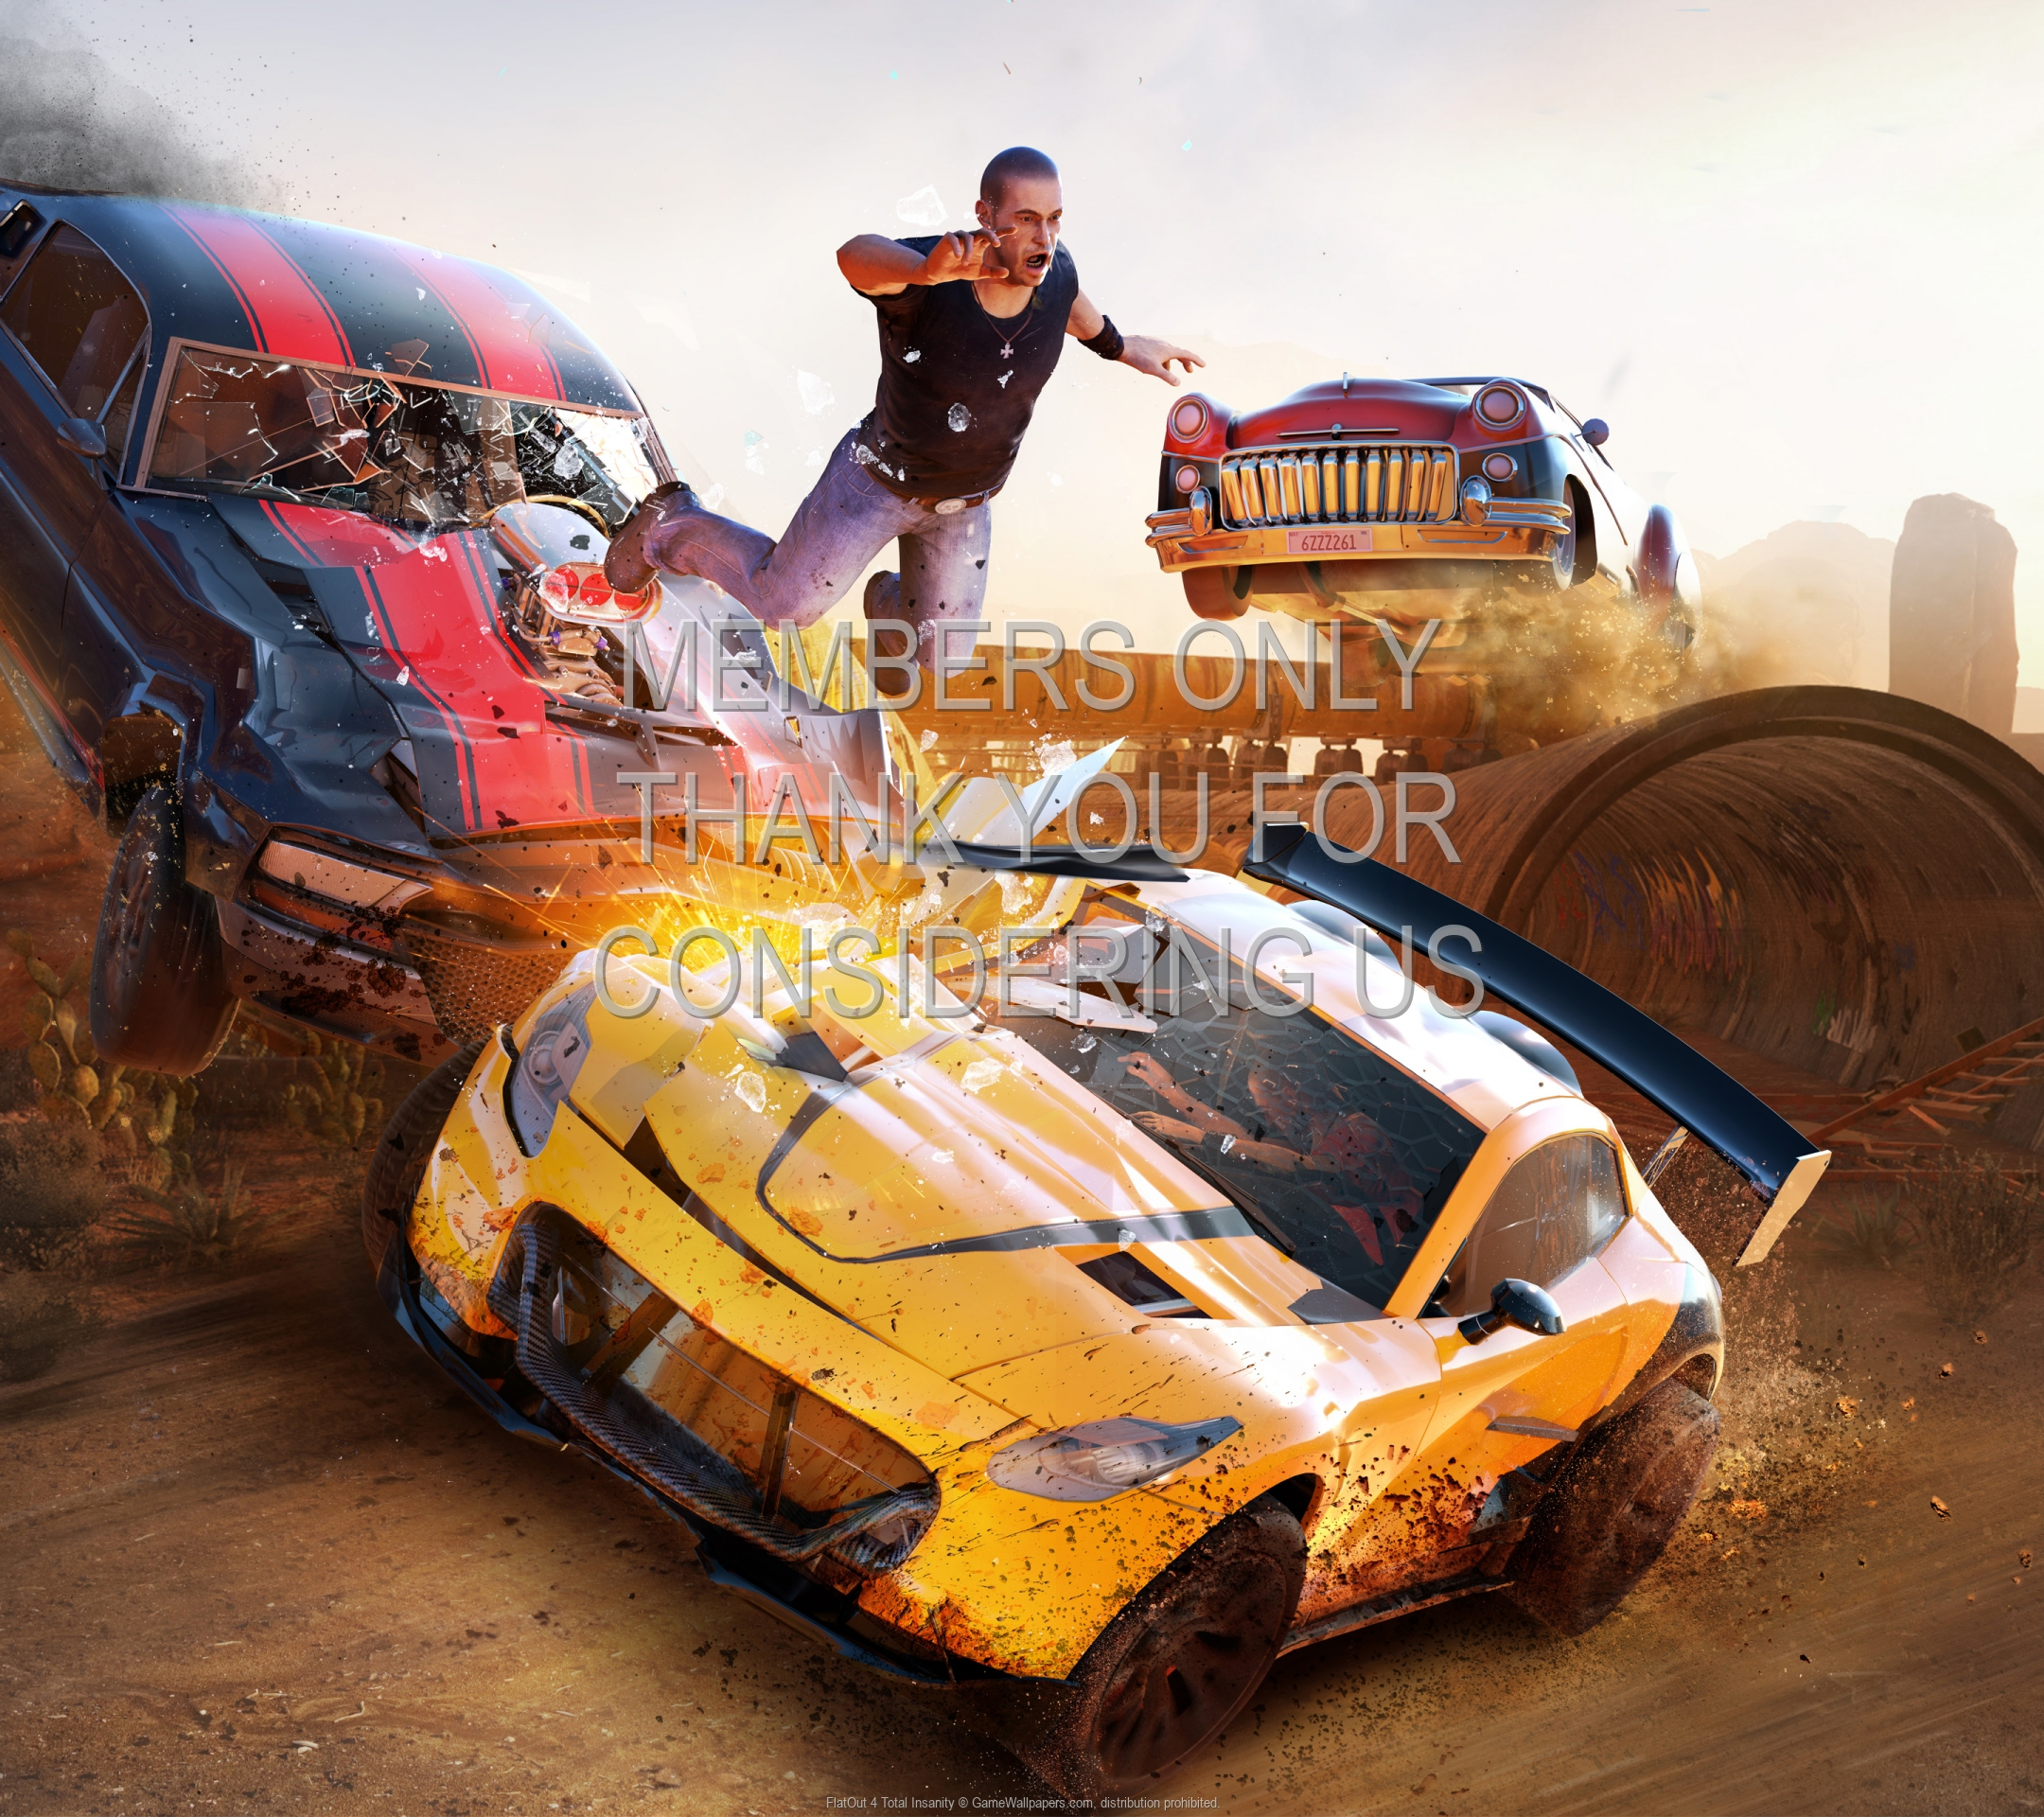 FlatOut 4: Total Insanity 1920x1080 Mobile wallpaper or background 01